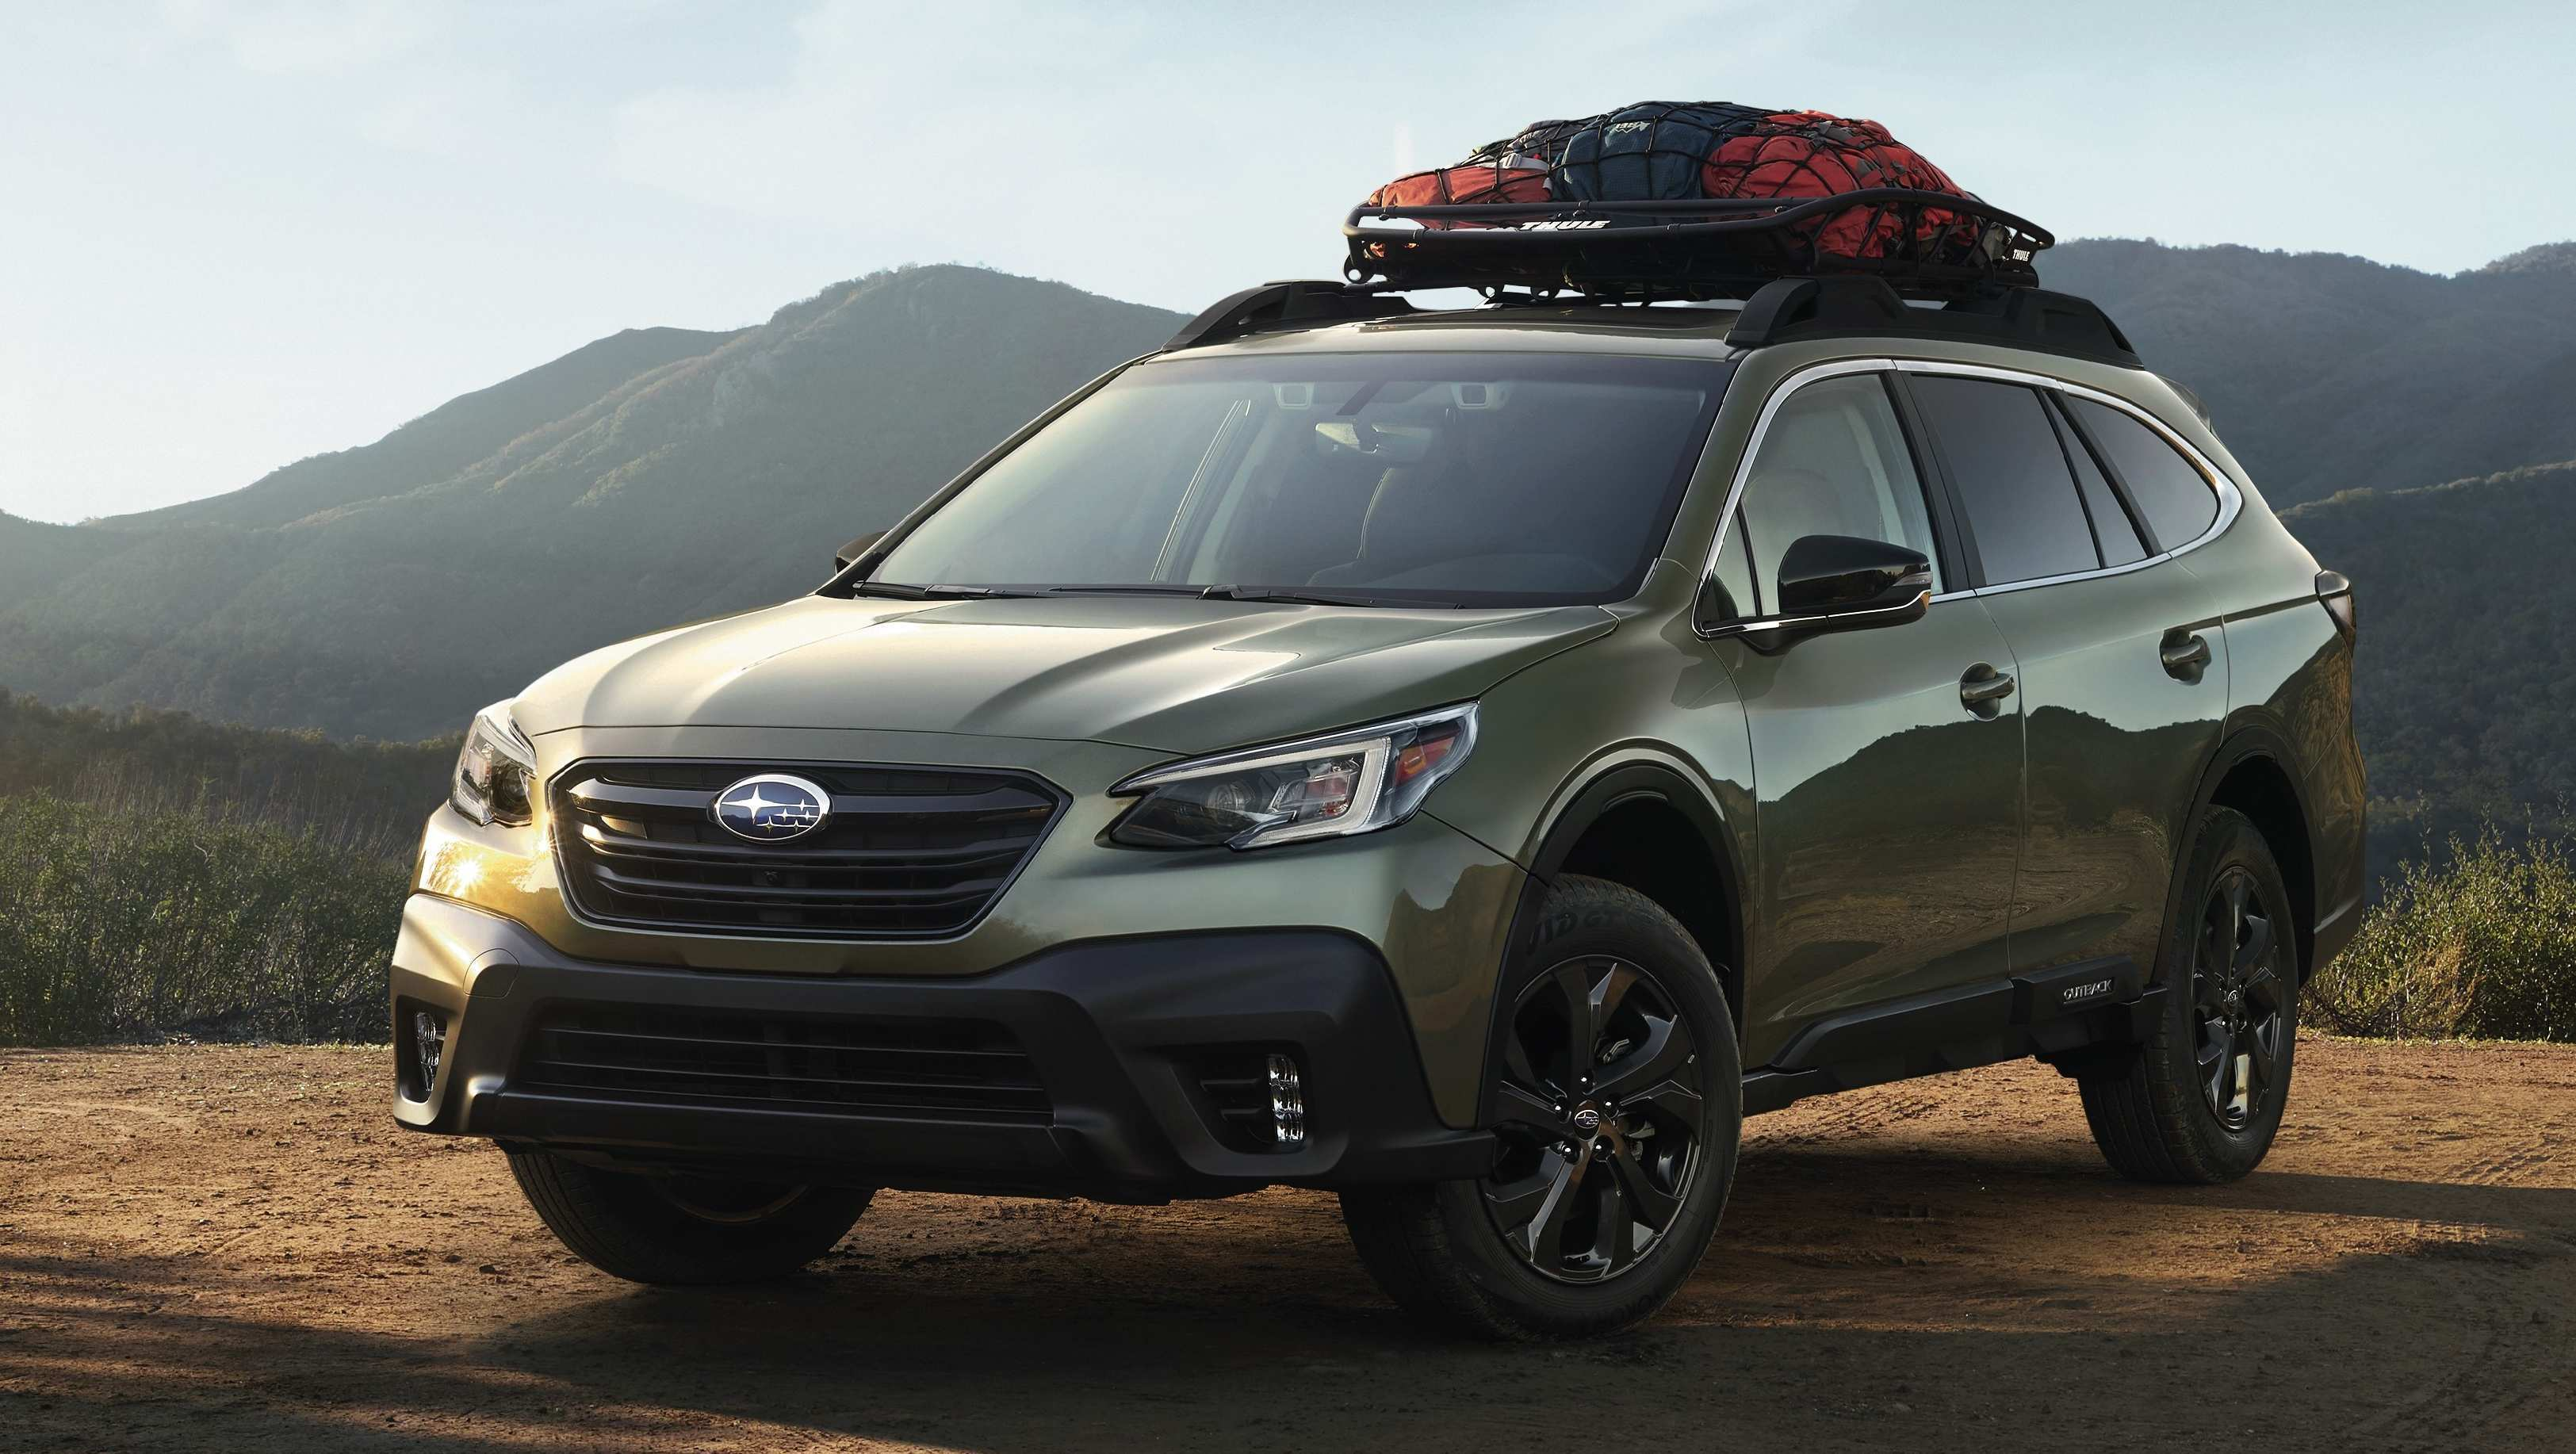 71 The Best 2020 Subaru Suv Rumors